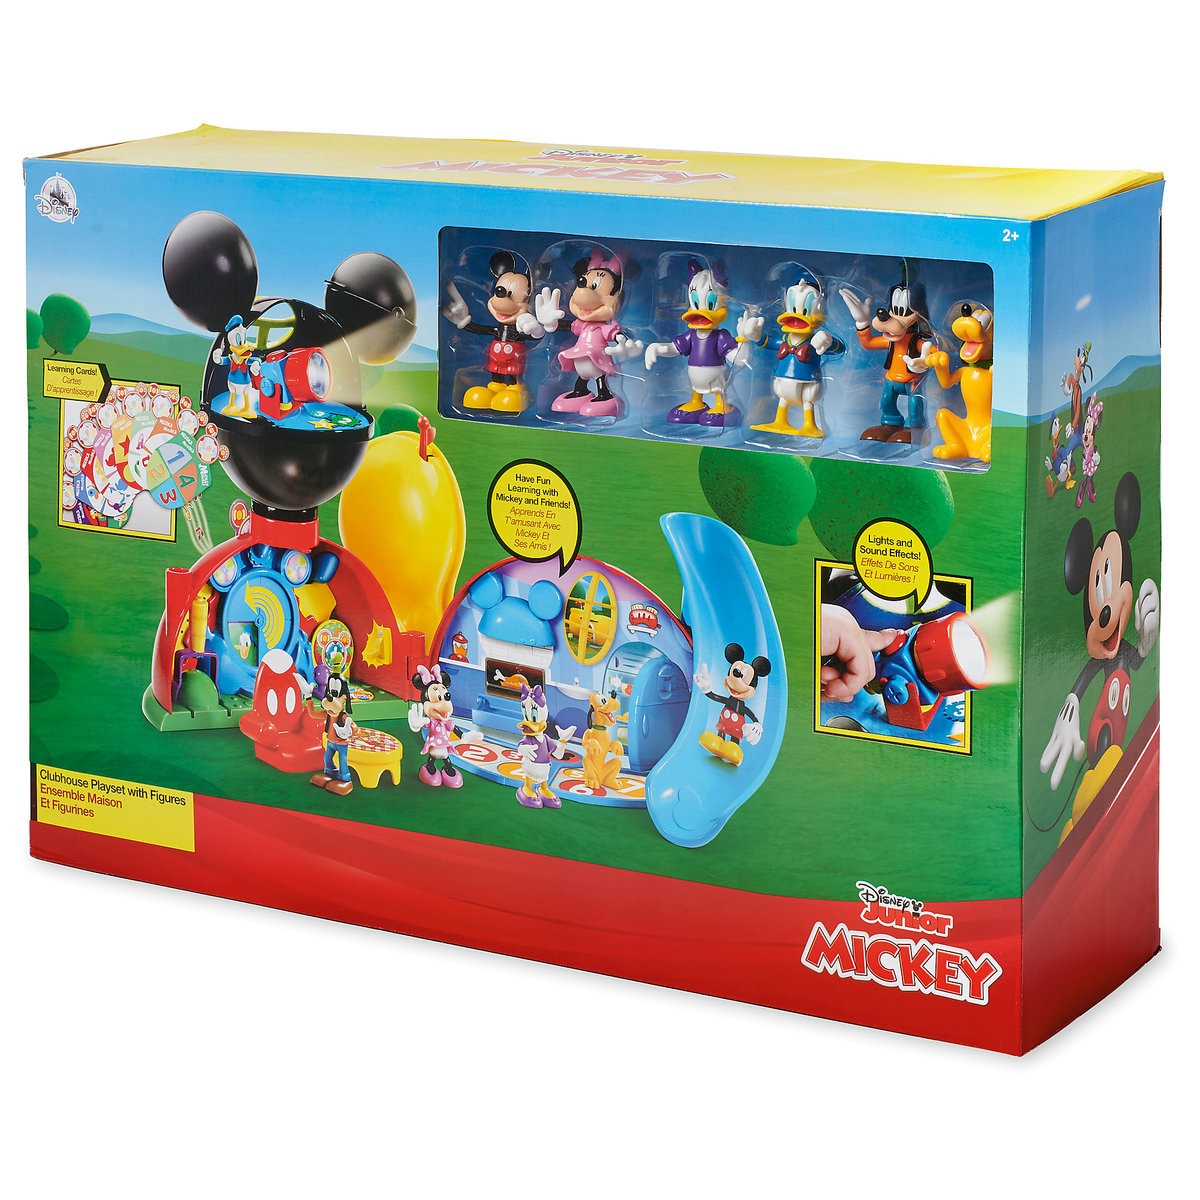 071488bb2a4 Product Image of Mickey Mouse Clubhouse Deluxe Playset   6